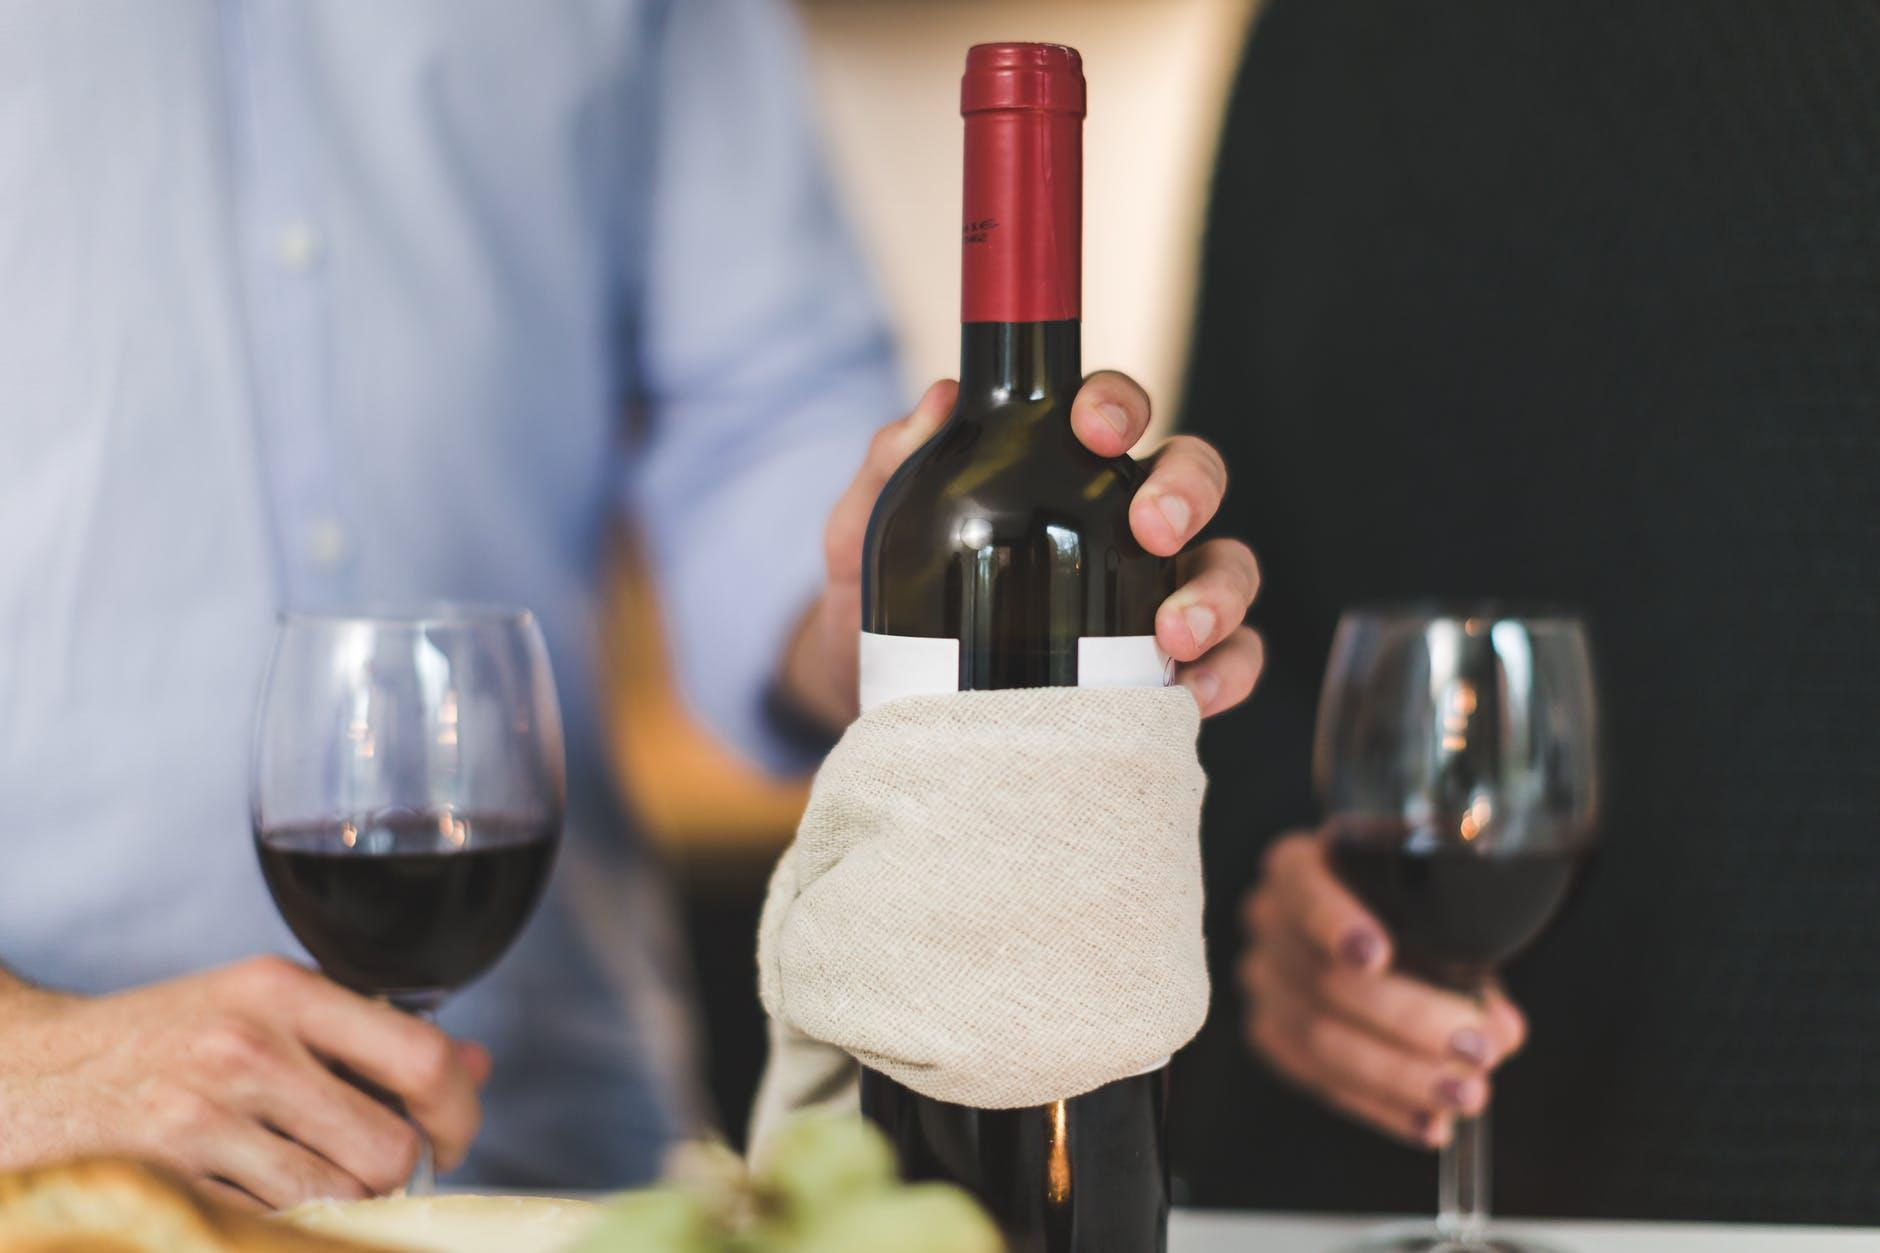 5 Steps To A Healthier You Through Drinking Wine